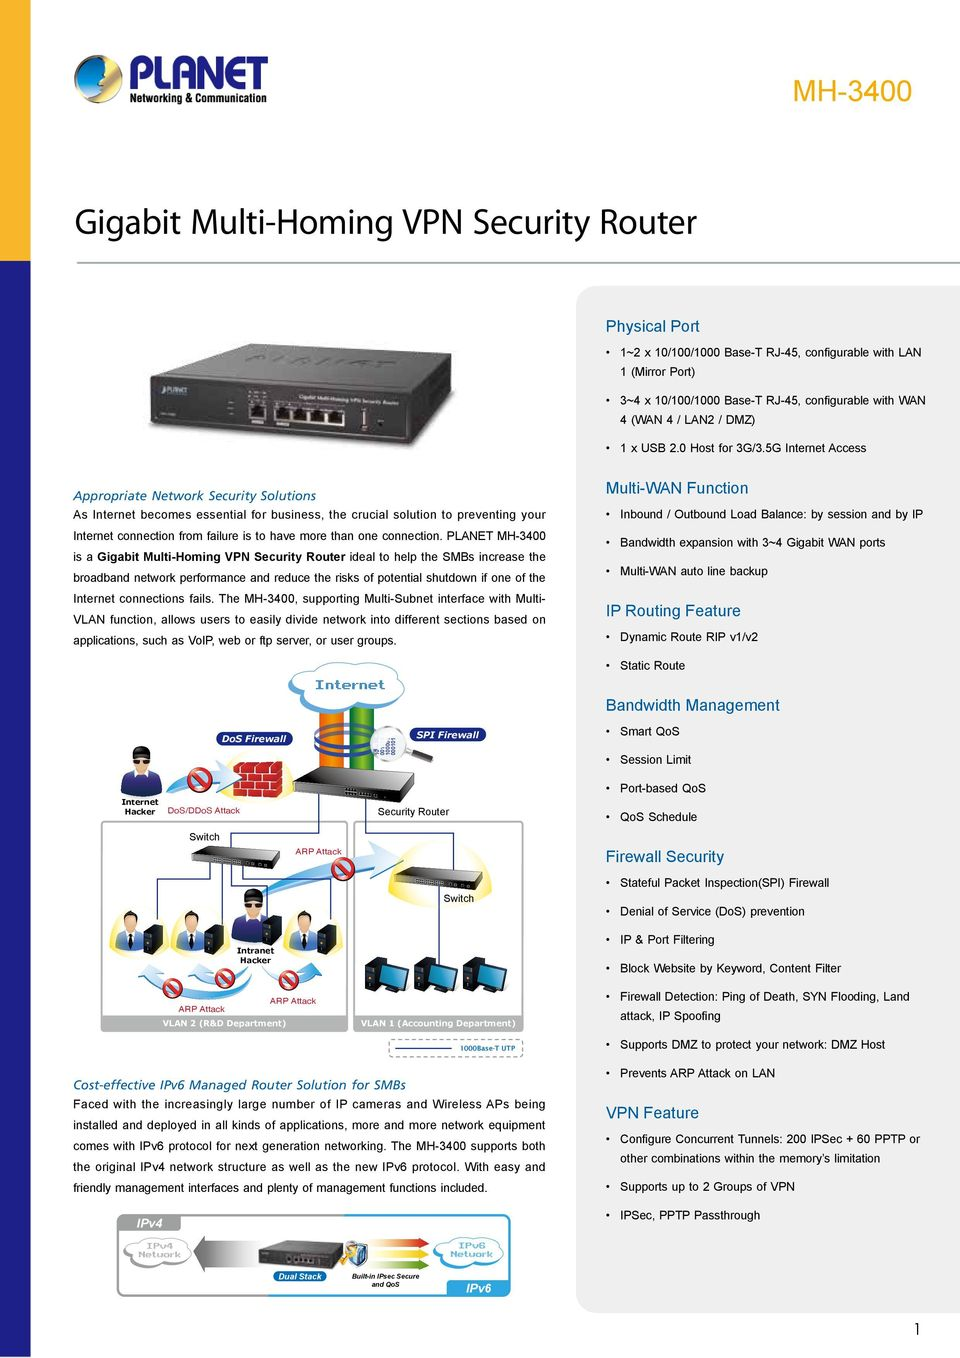 5G Access Appropriate Network Security Solutions As becomes essential for business, the crucial solution to preventing your connection from failure is to have more than one connection.